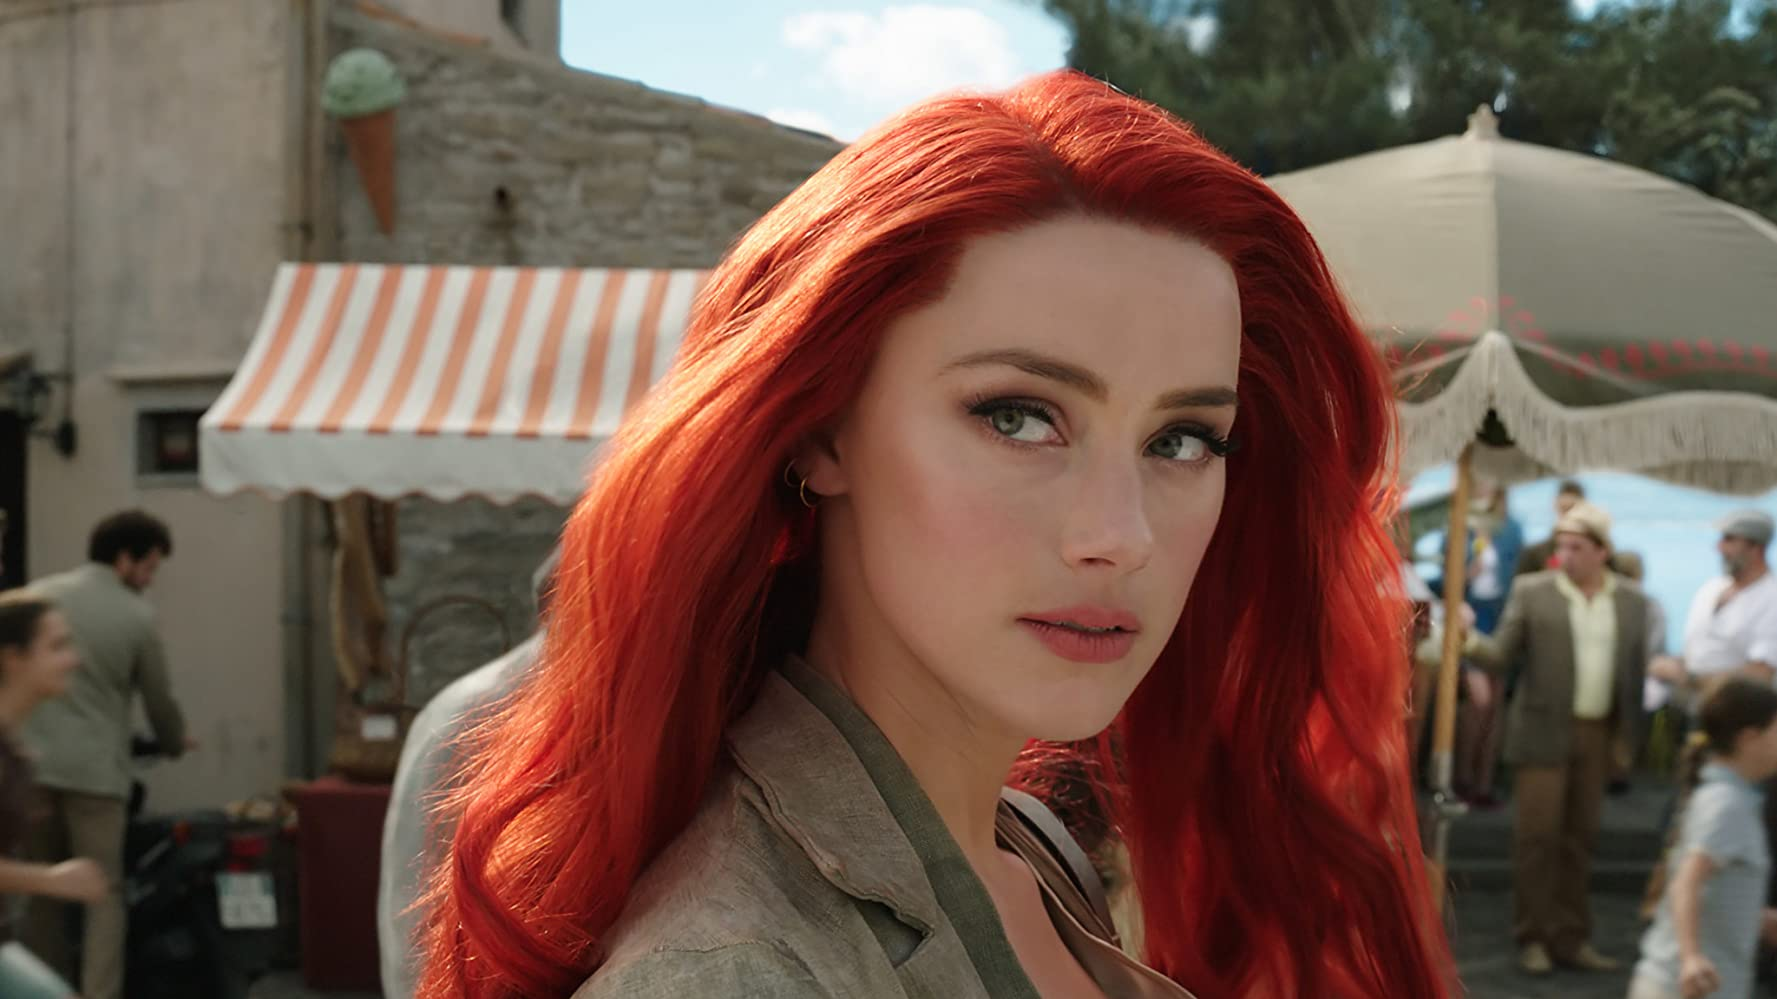 Amber Heard / Aquaman / Warner Bros. Pictures. © 2019. All rights reserved.